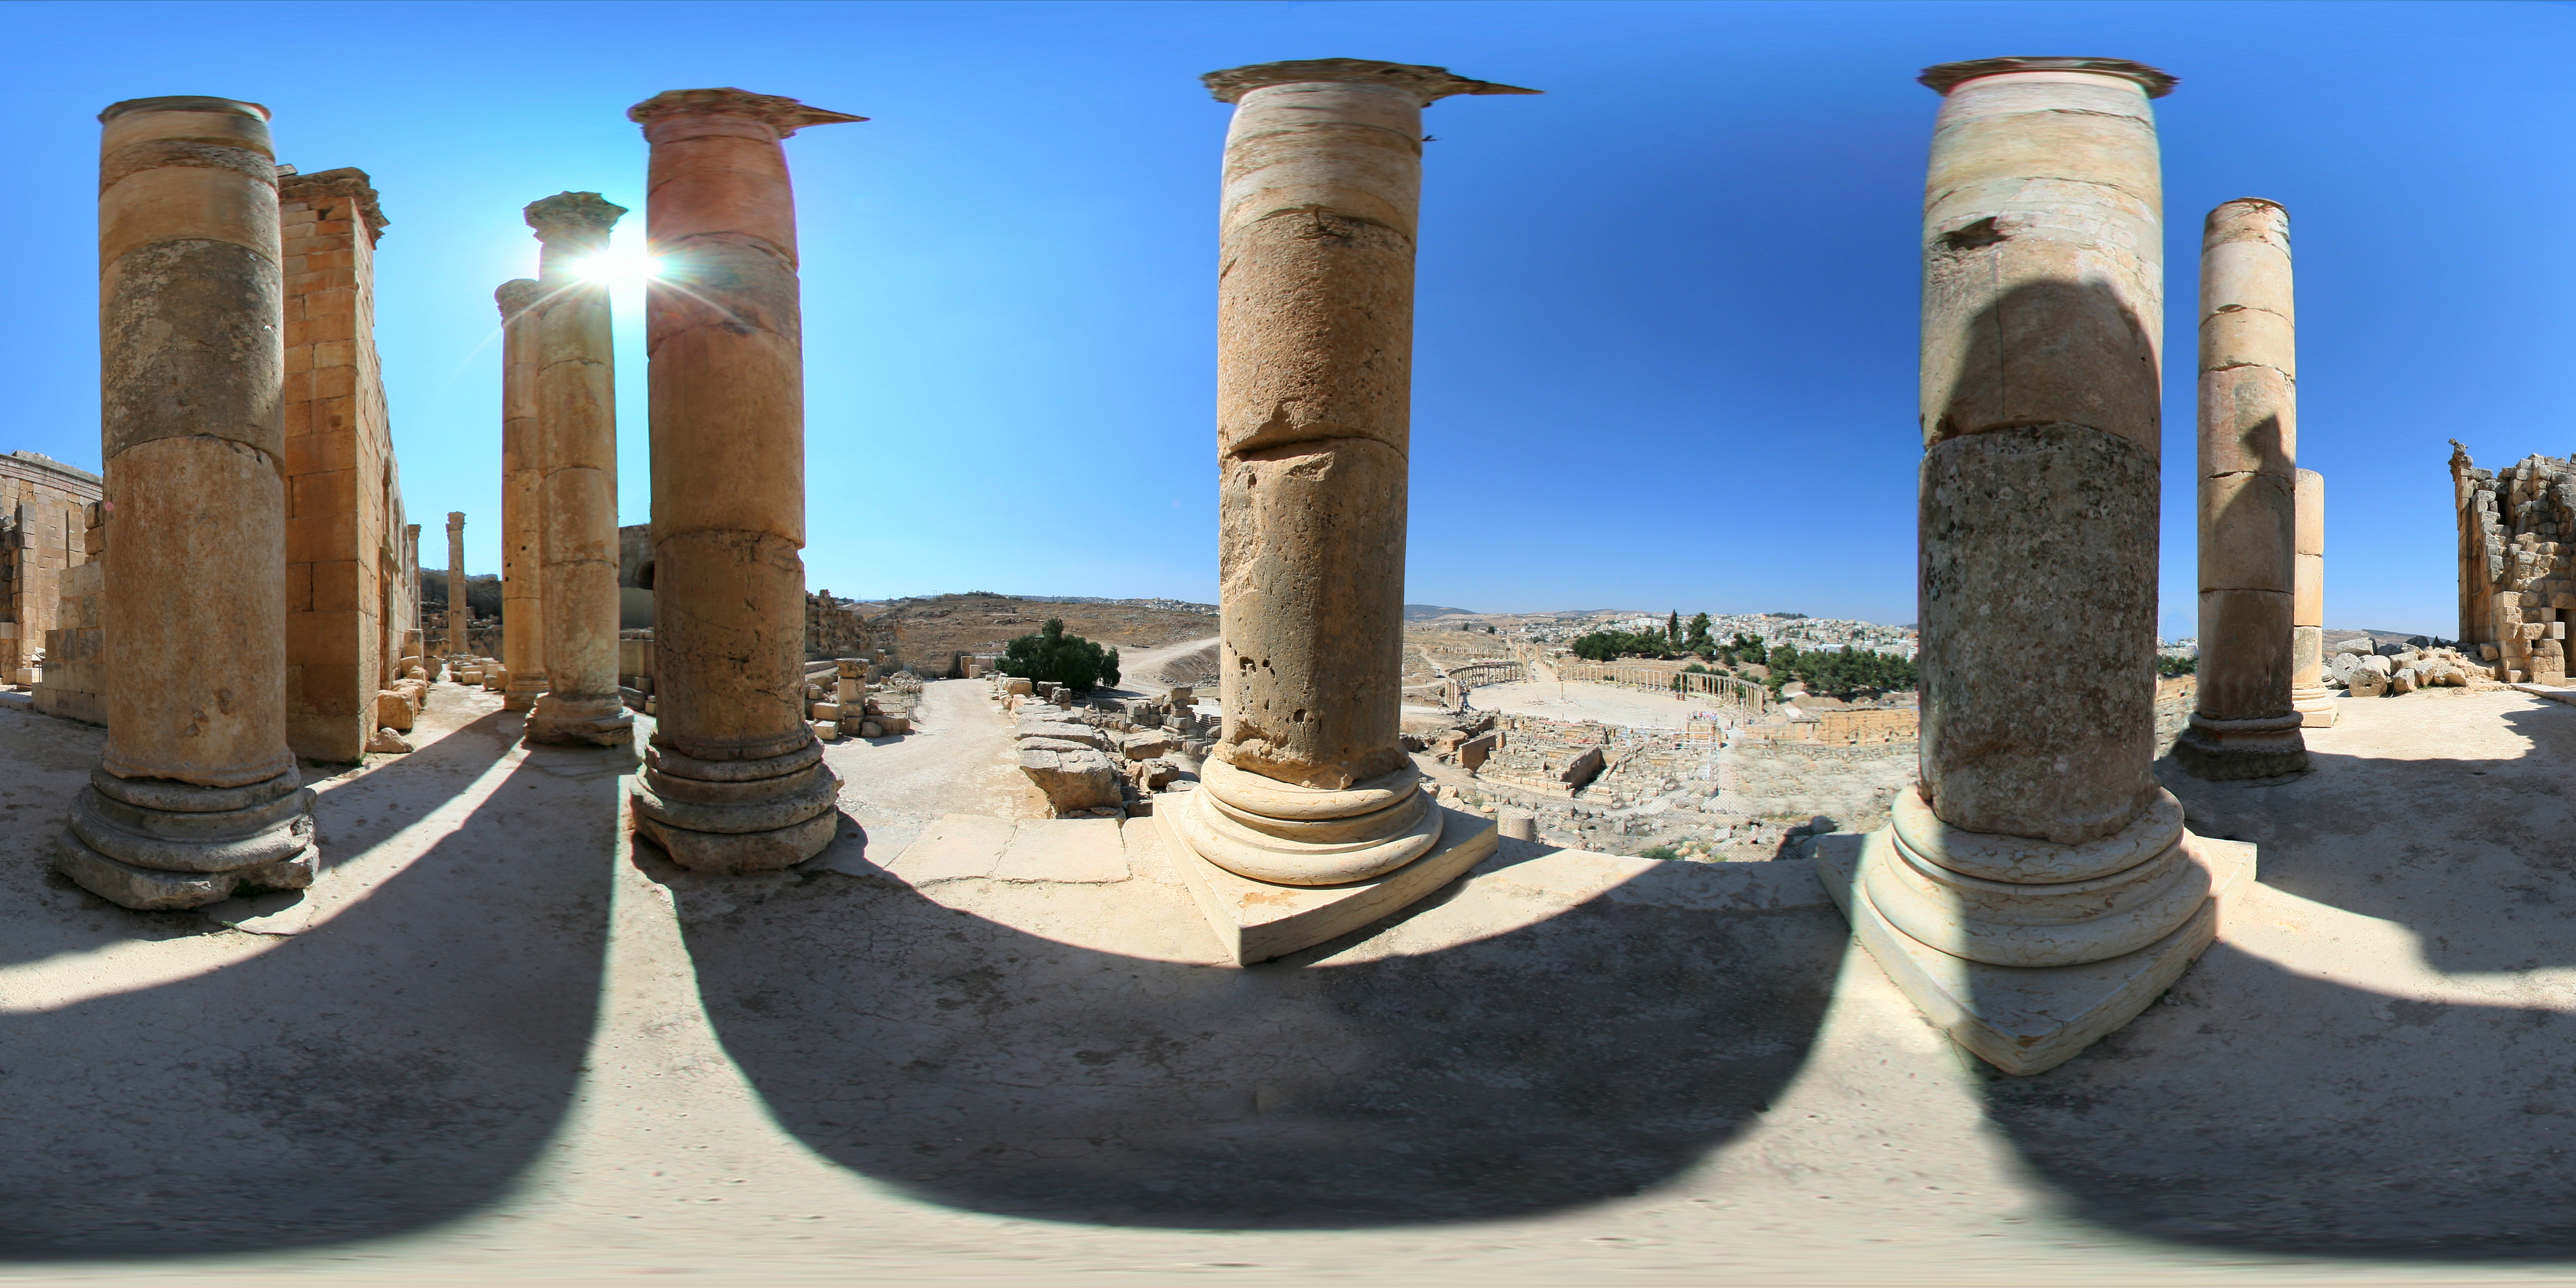 Zeus Temple at Jerash - Jordan